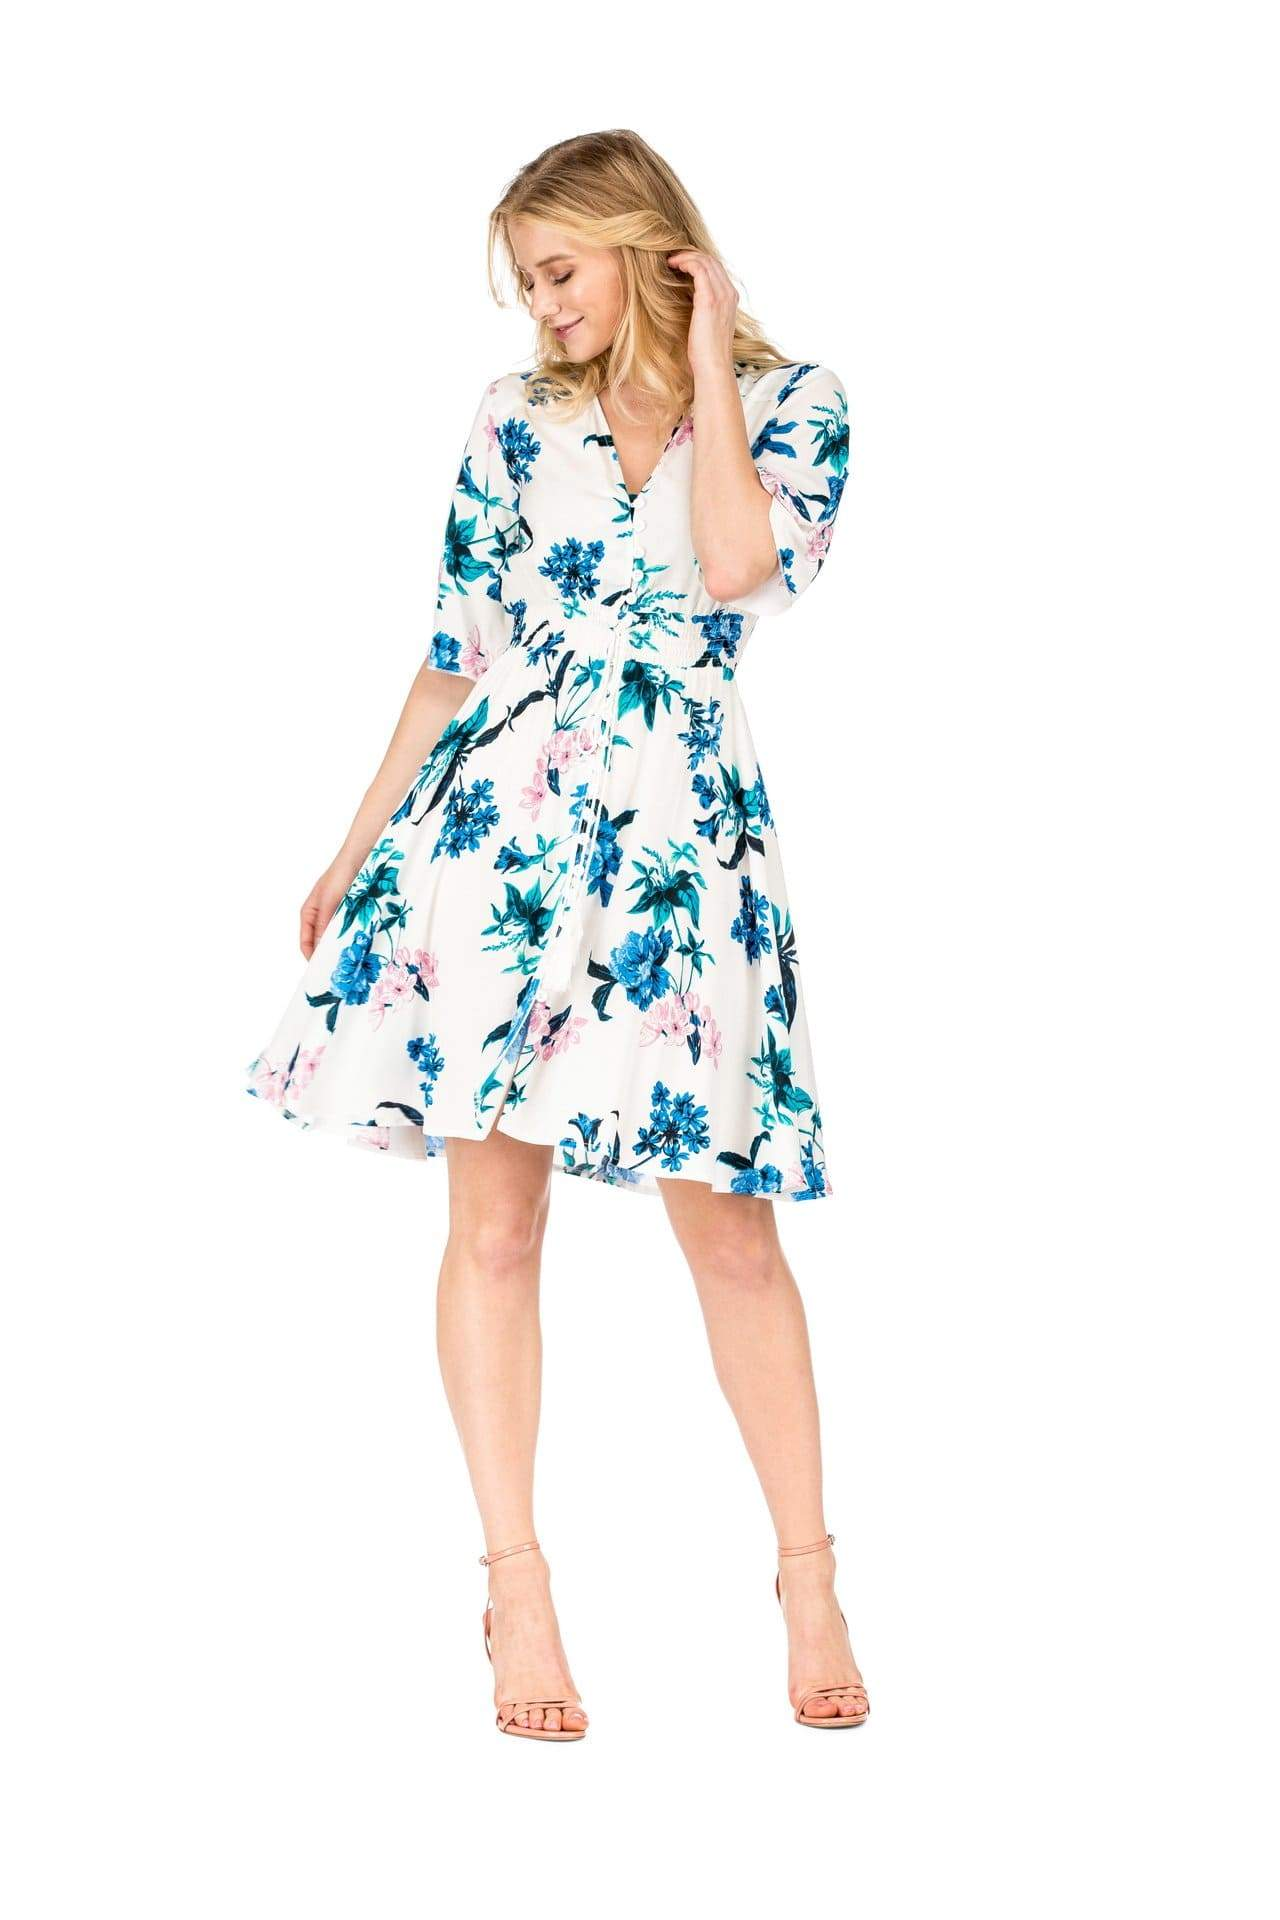 DAILYHAUTE Women's dress Haute Edition Women's Button Up Floral Party Dress